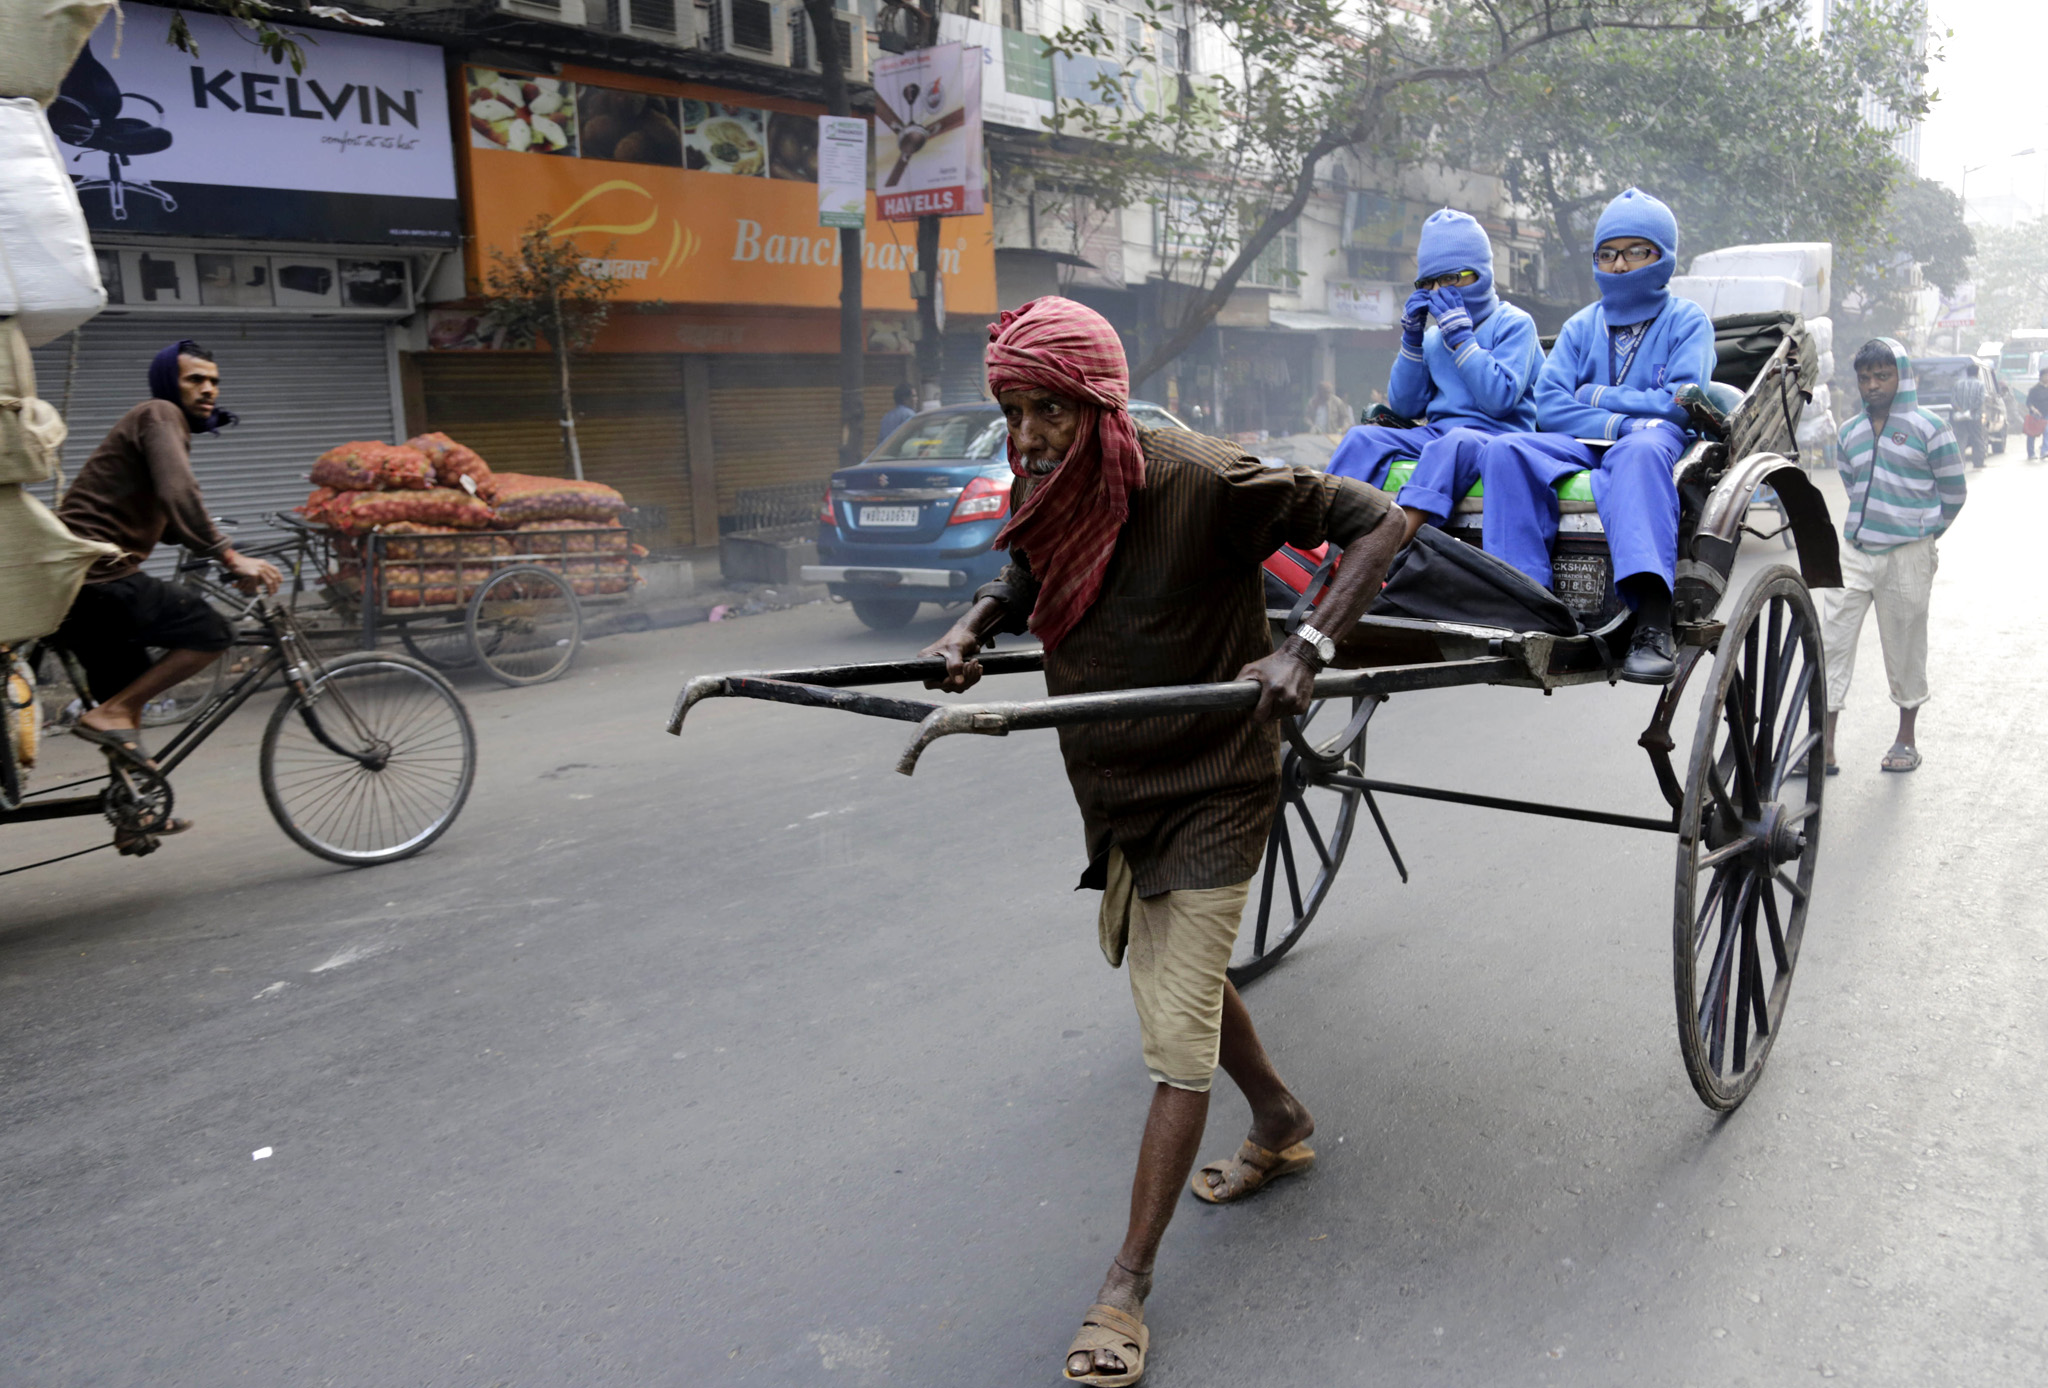 An Indian hand rickshaw puller transports children to school in Kolkata, India, Tuesday, Feb. 10, 2015. Kolkata is the only city in India where hand-pulled rickshaws are still in operation. (AP Photo/Bikas Das)